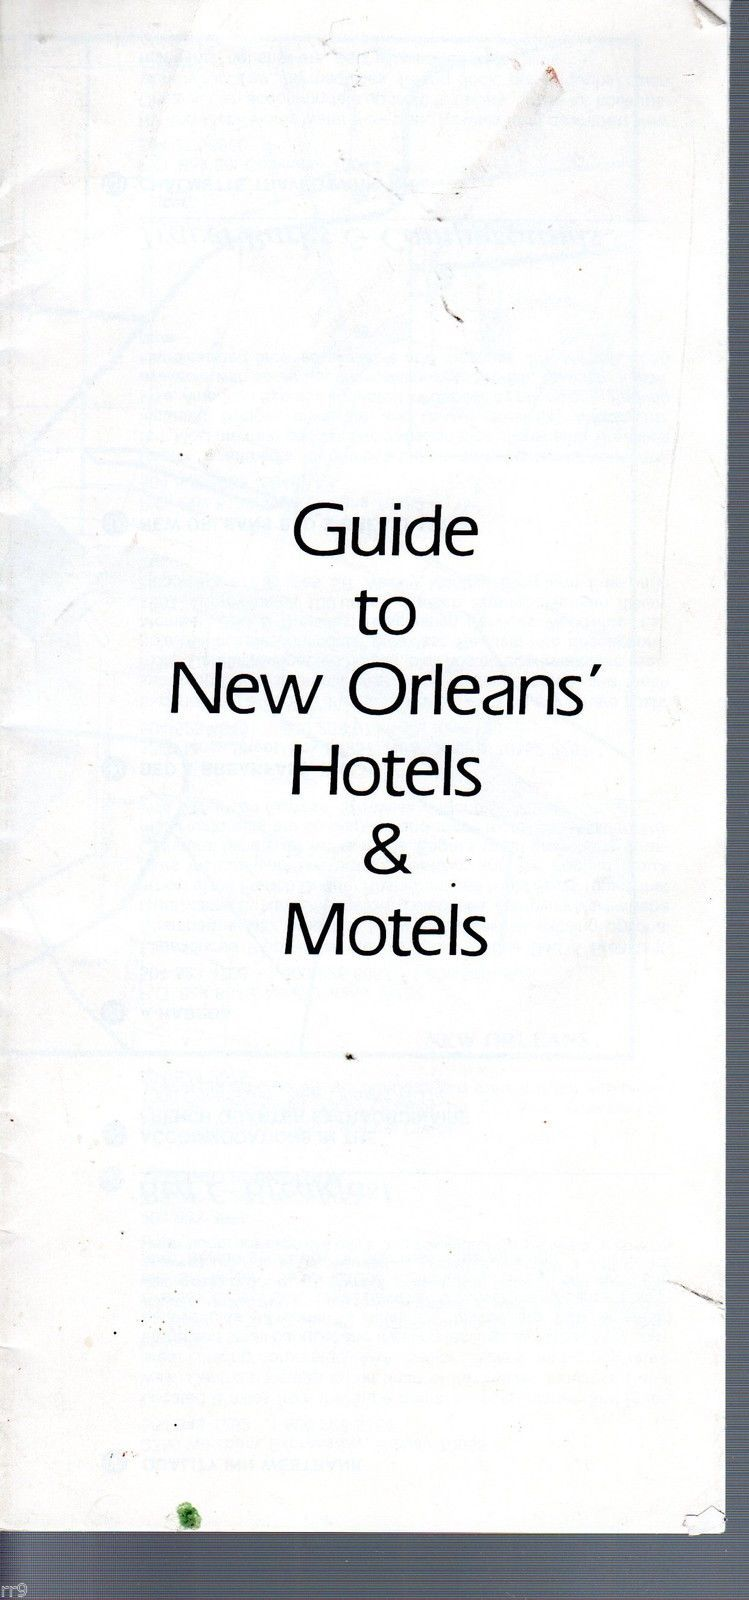 Primary image for Guide to New Orleans' Hotels & Motels Brochure with Map